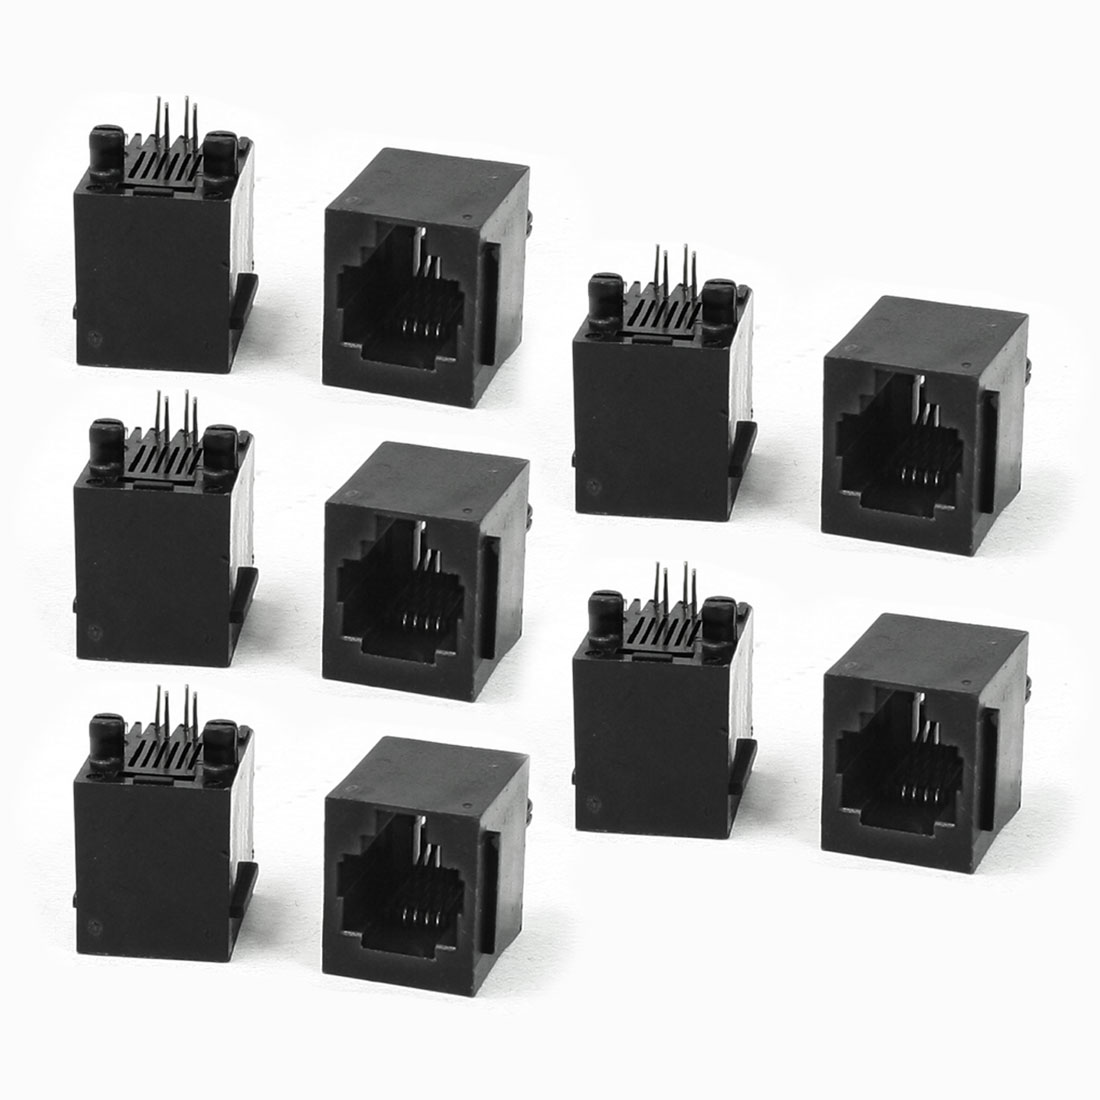 10 Pieces RJ11 Modular Network PCB Jack Vertical Ports Sockets